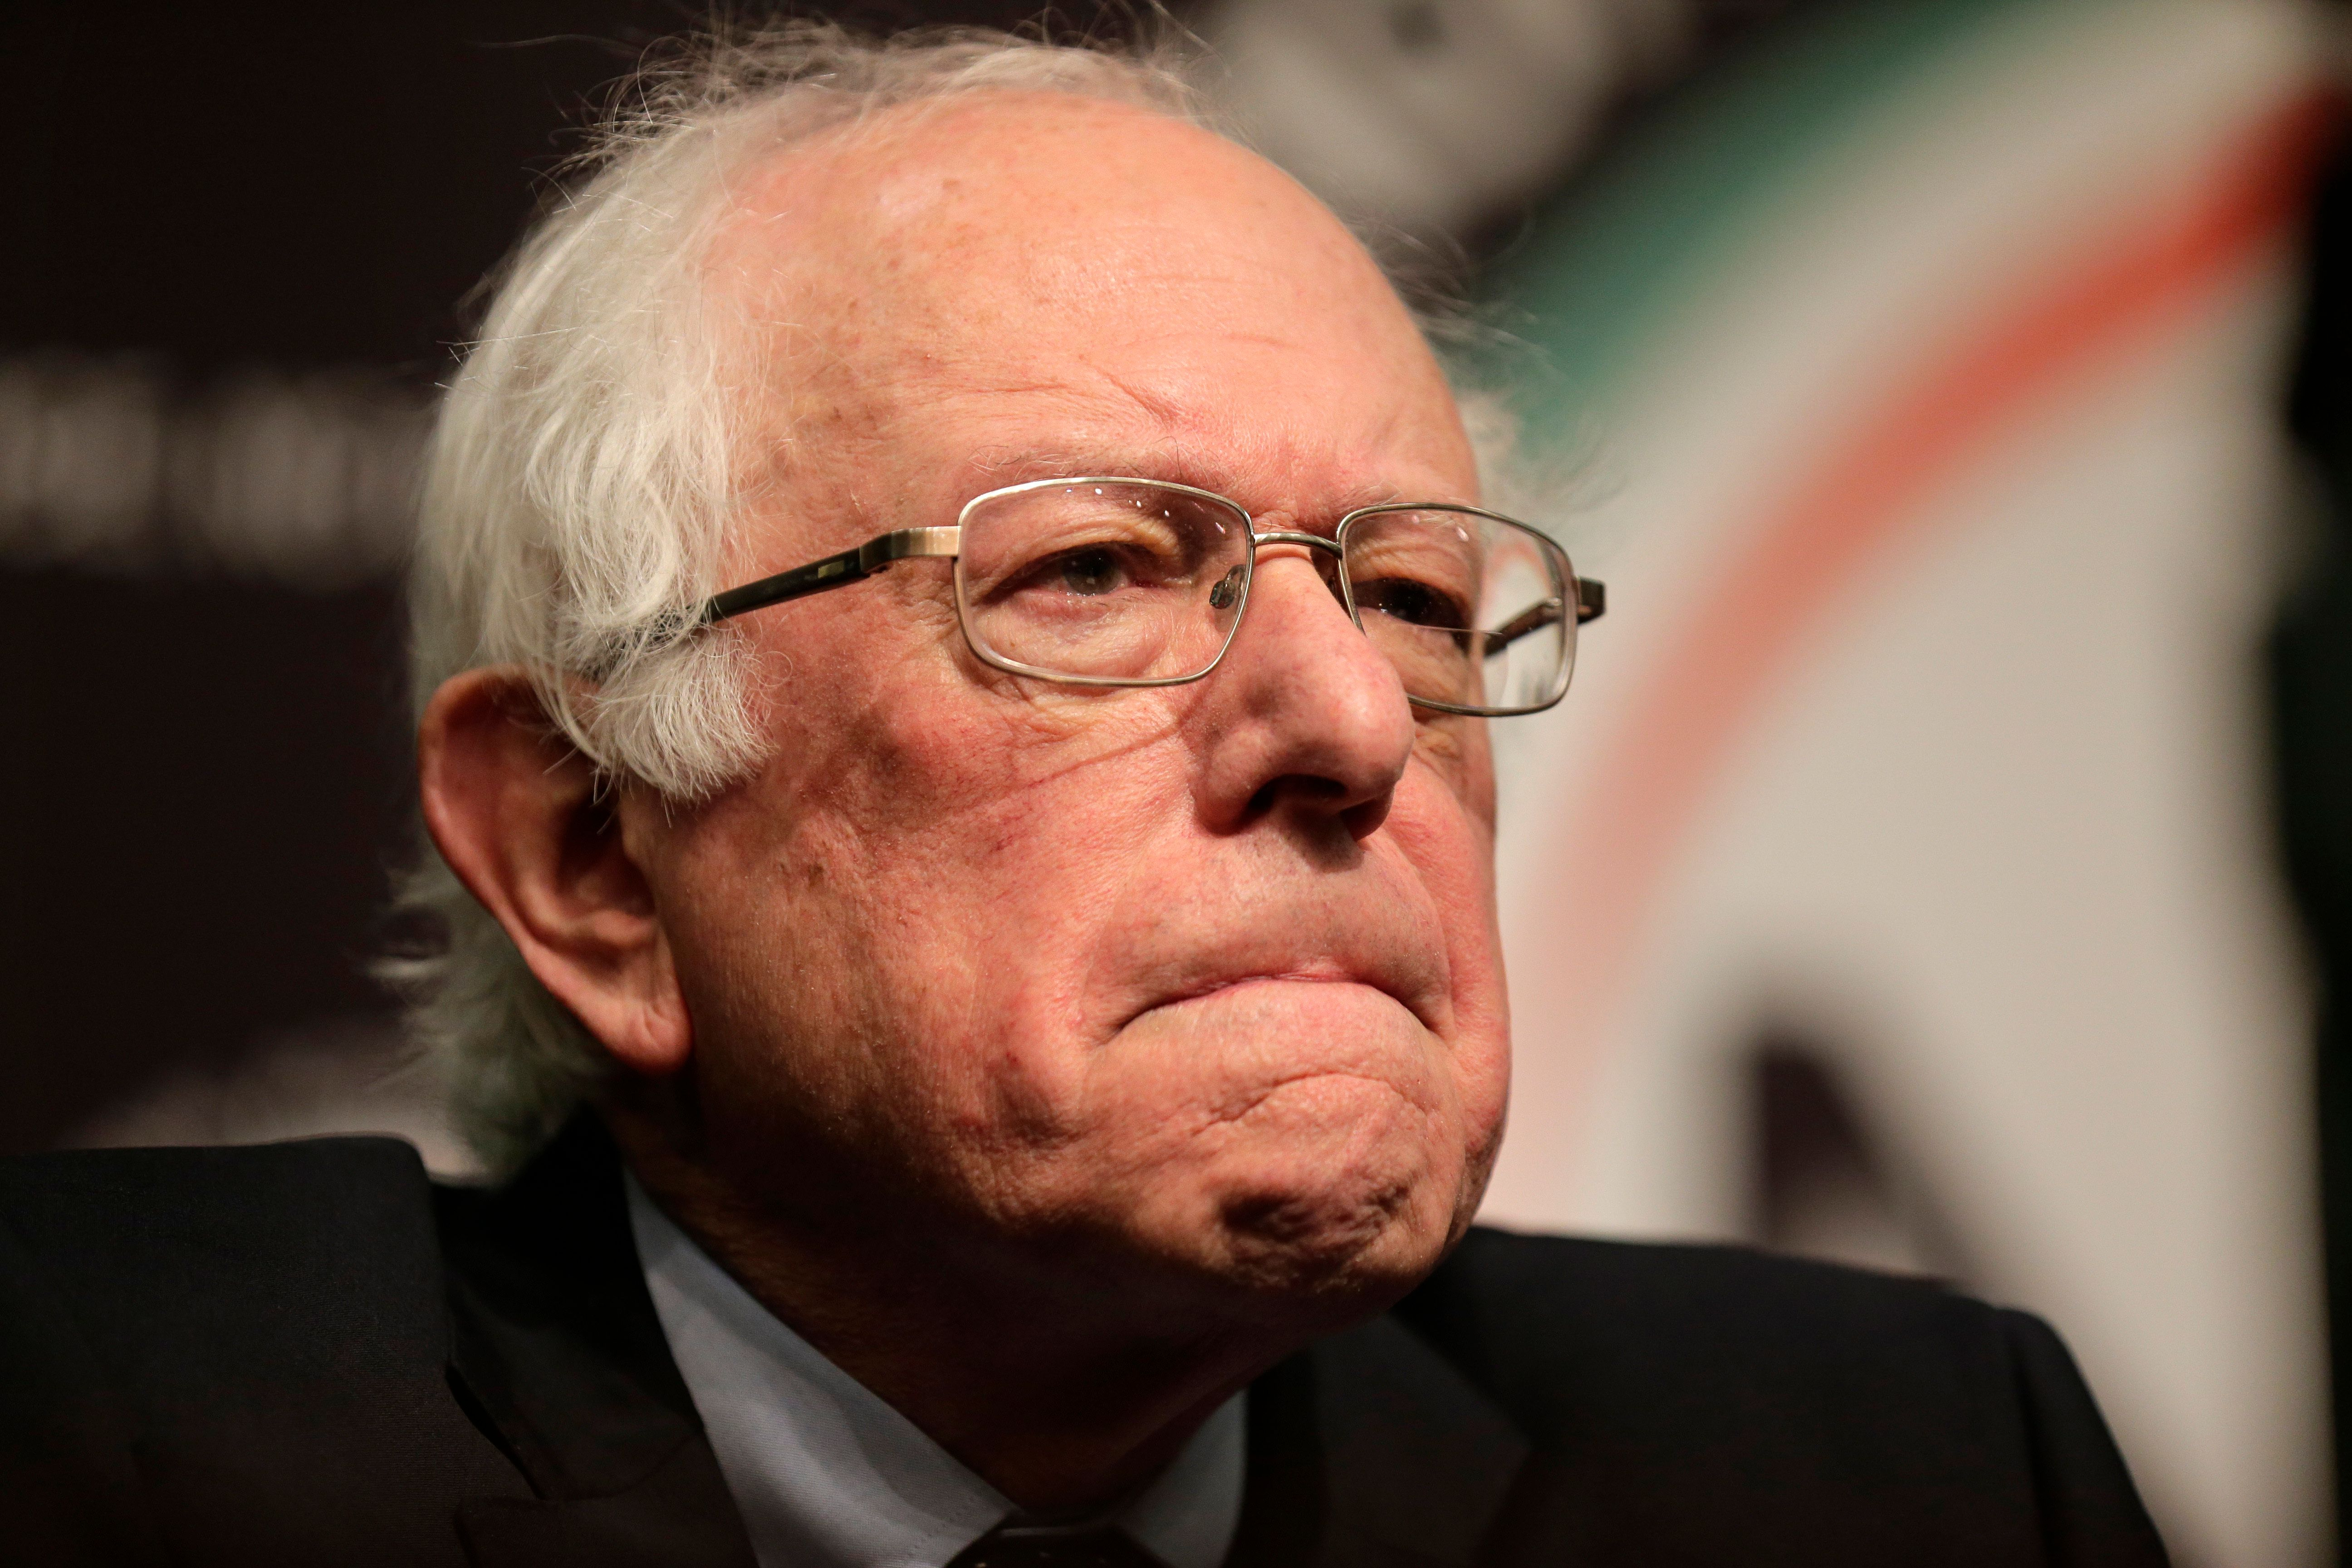 Sen. Bernie Sanders prepares to speak during the National Action Network Convention in New York, Friday, April 5, 2019. (AP Photo/Seth Wenig)